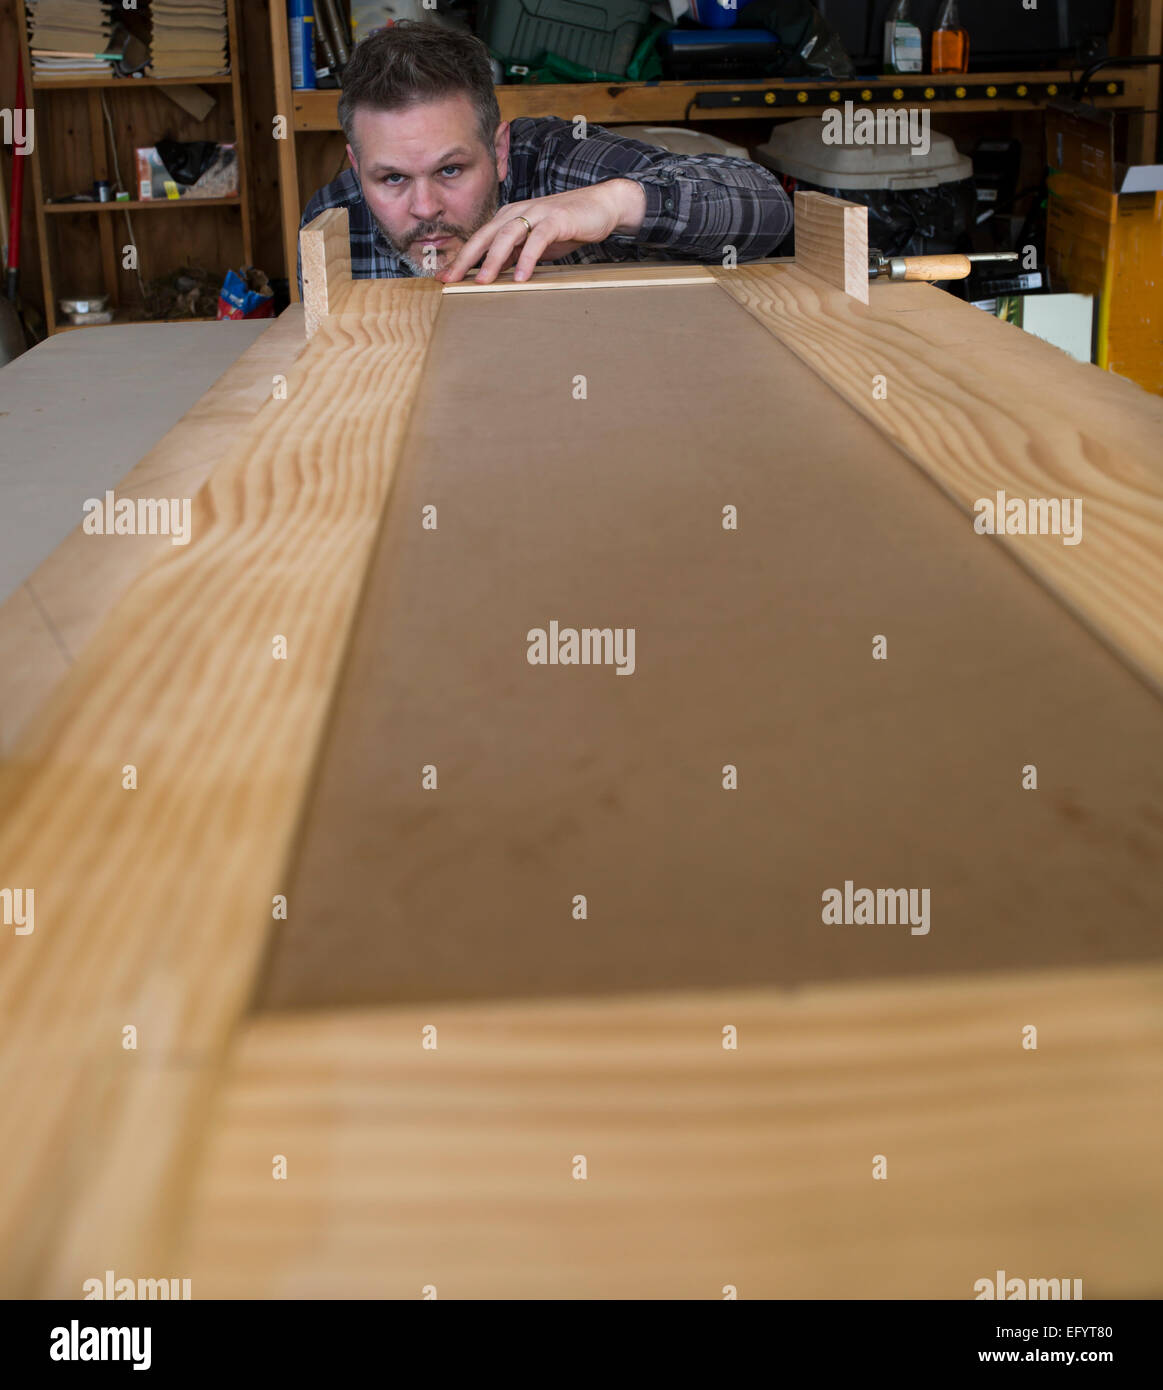 Man leaning down and measuring woodworking project - Stock Image